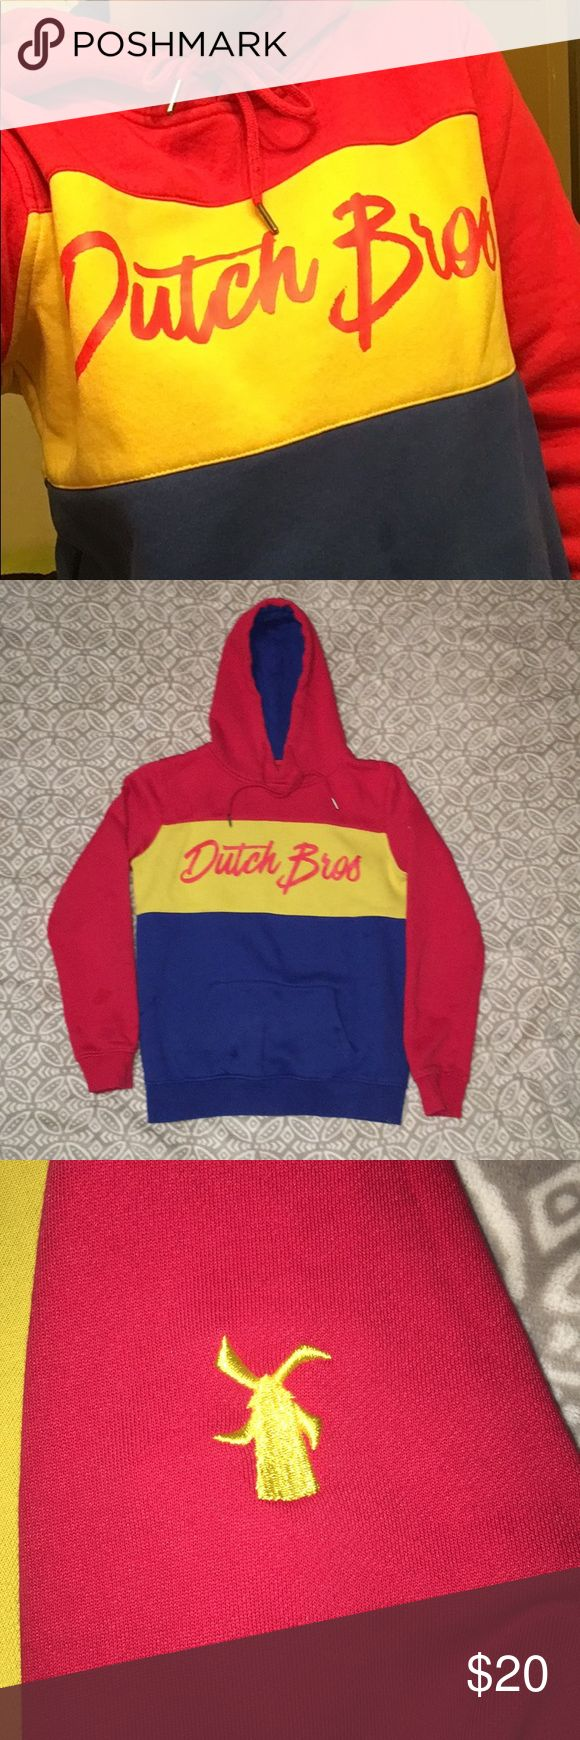 Dutch Bros employee sweatshirt *Very warm Dutch Bros sweatshirt *Thick material  *There are some stains on this sweatshirt, which I pictured above. They are really only noticeable if you know what you're looking for  *This is a perfect sweatshirt if you are also a barista just wanting something to keep you warm *It is still very soft on the inside, fleece isn't worn down *As always, price is negotiable Dutch Bros Tops Sweatshirts & Hoodies